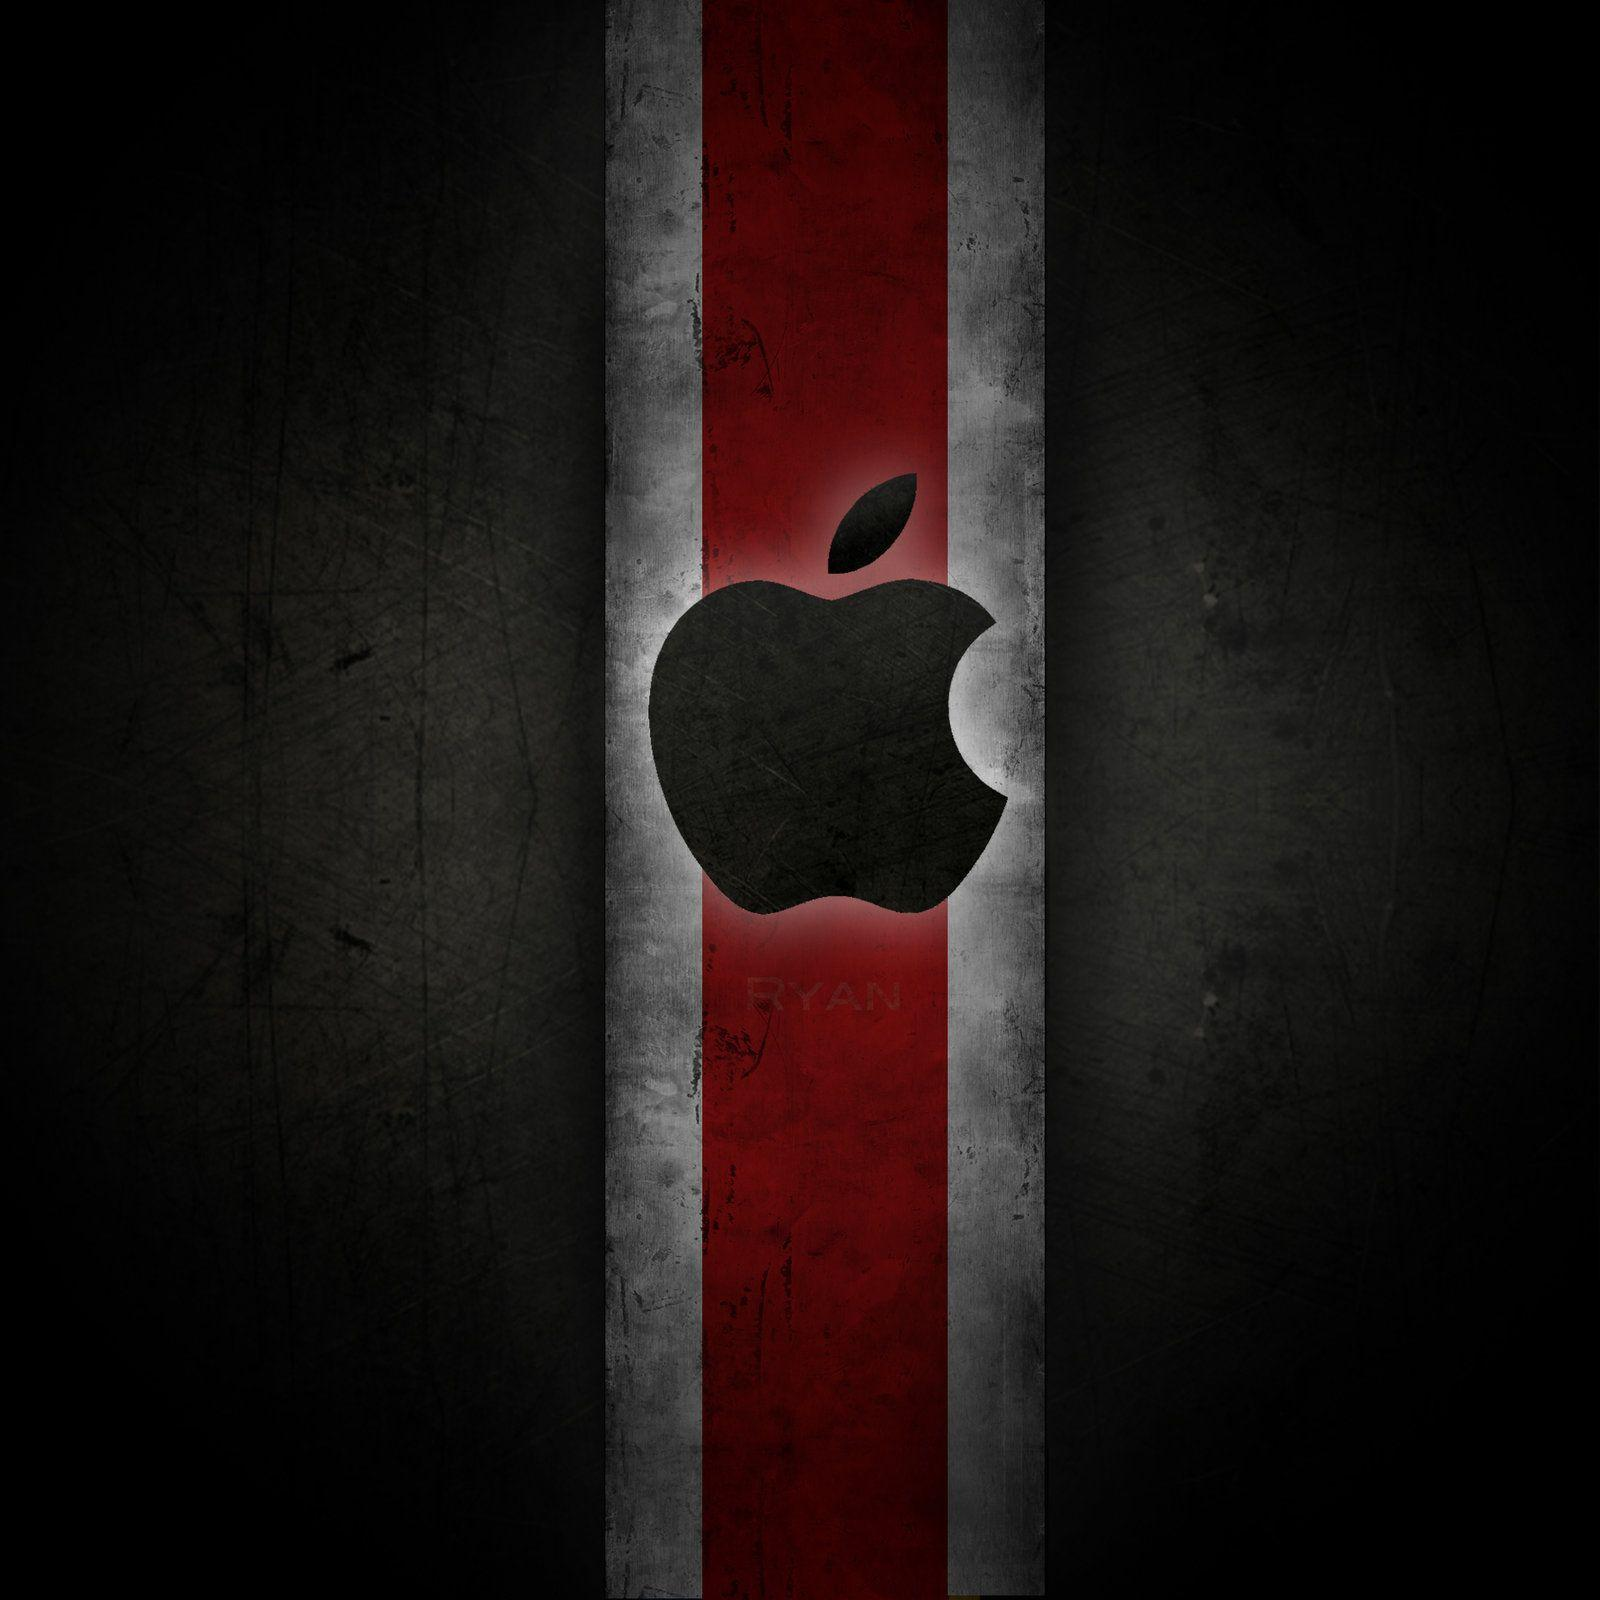 red apple wallpapers iphone - wallpaper cave